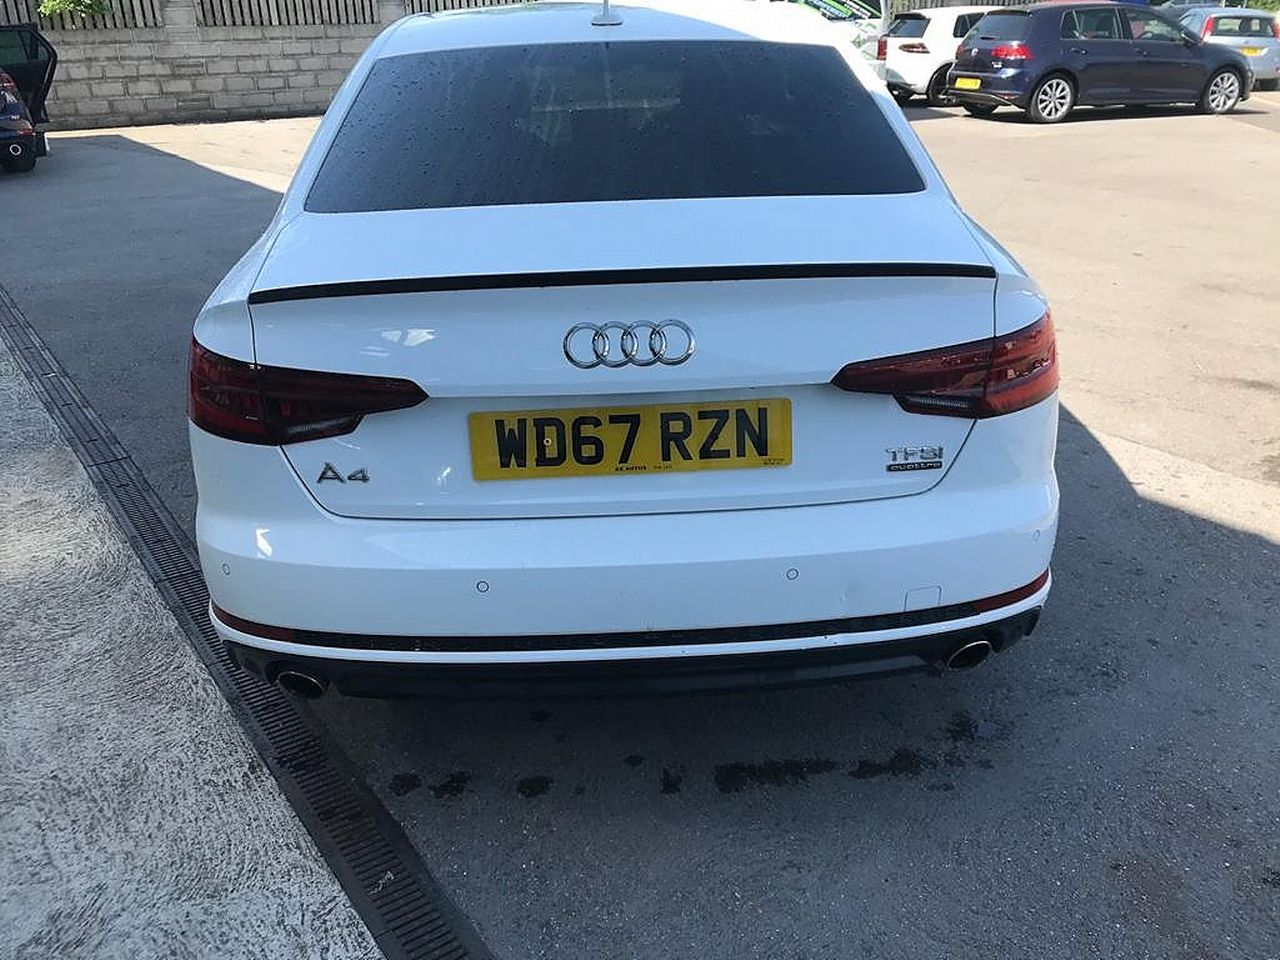 2017 AUDI A4 Black Ed 2.0 TFSI 252PS quattro S tronic - Picture 4 of 17